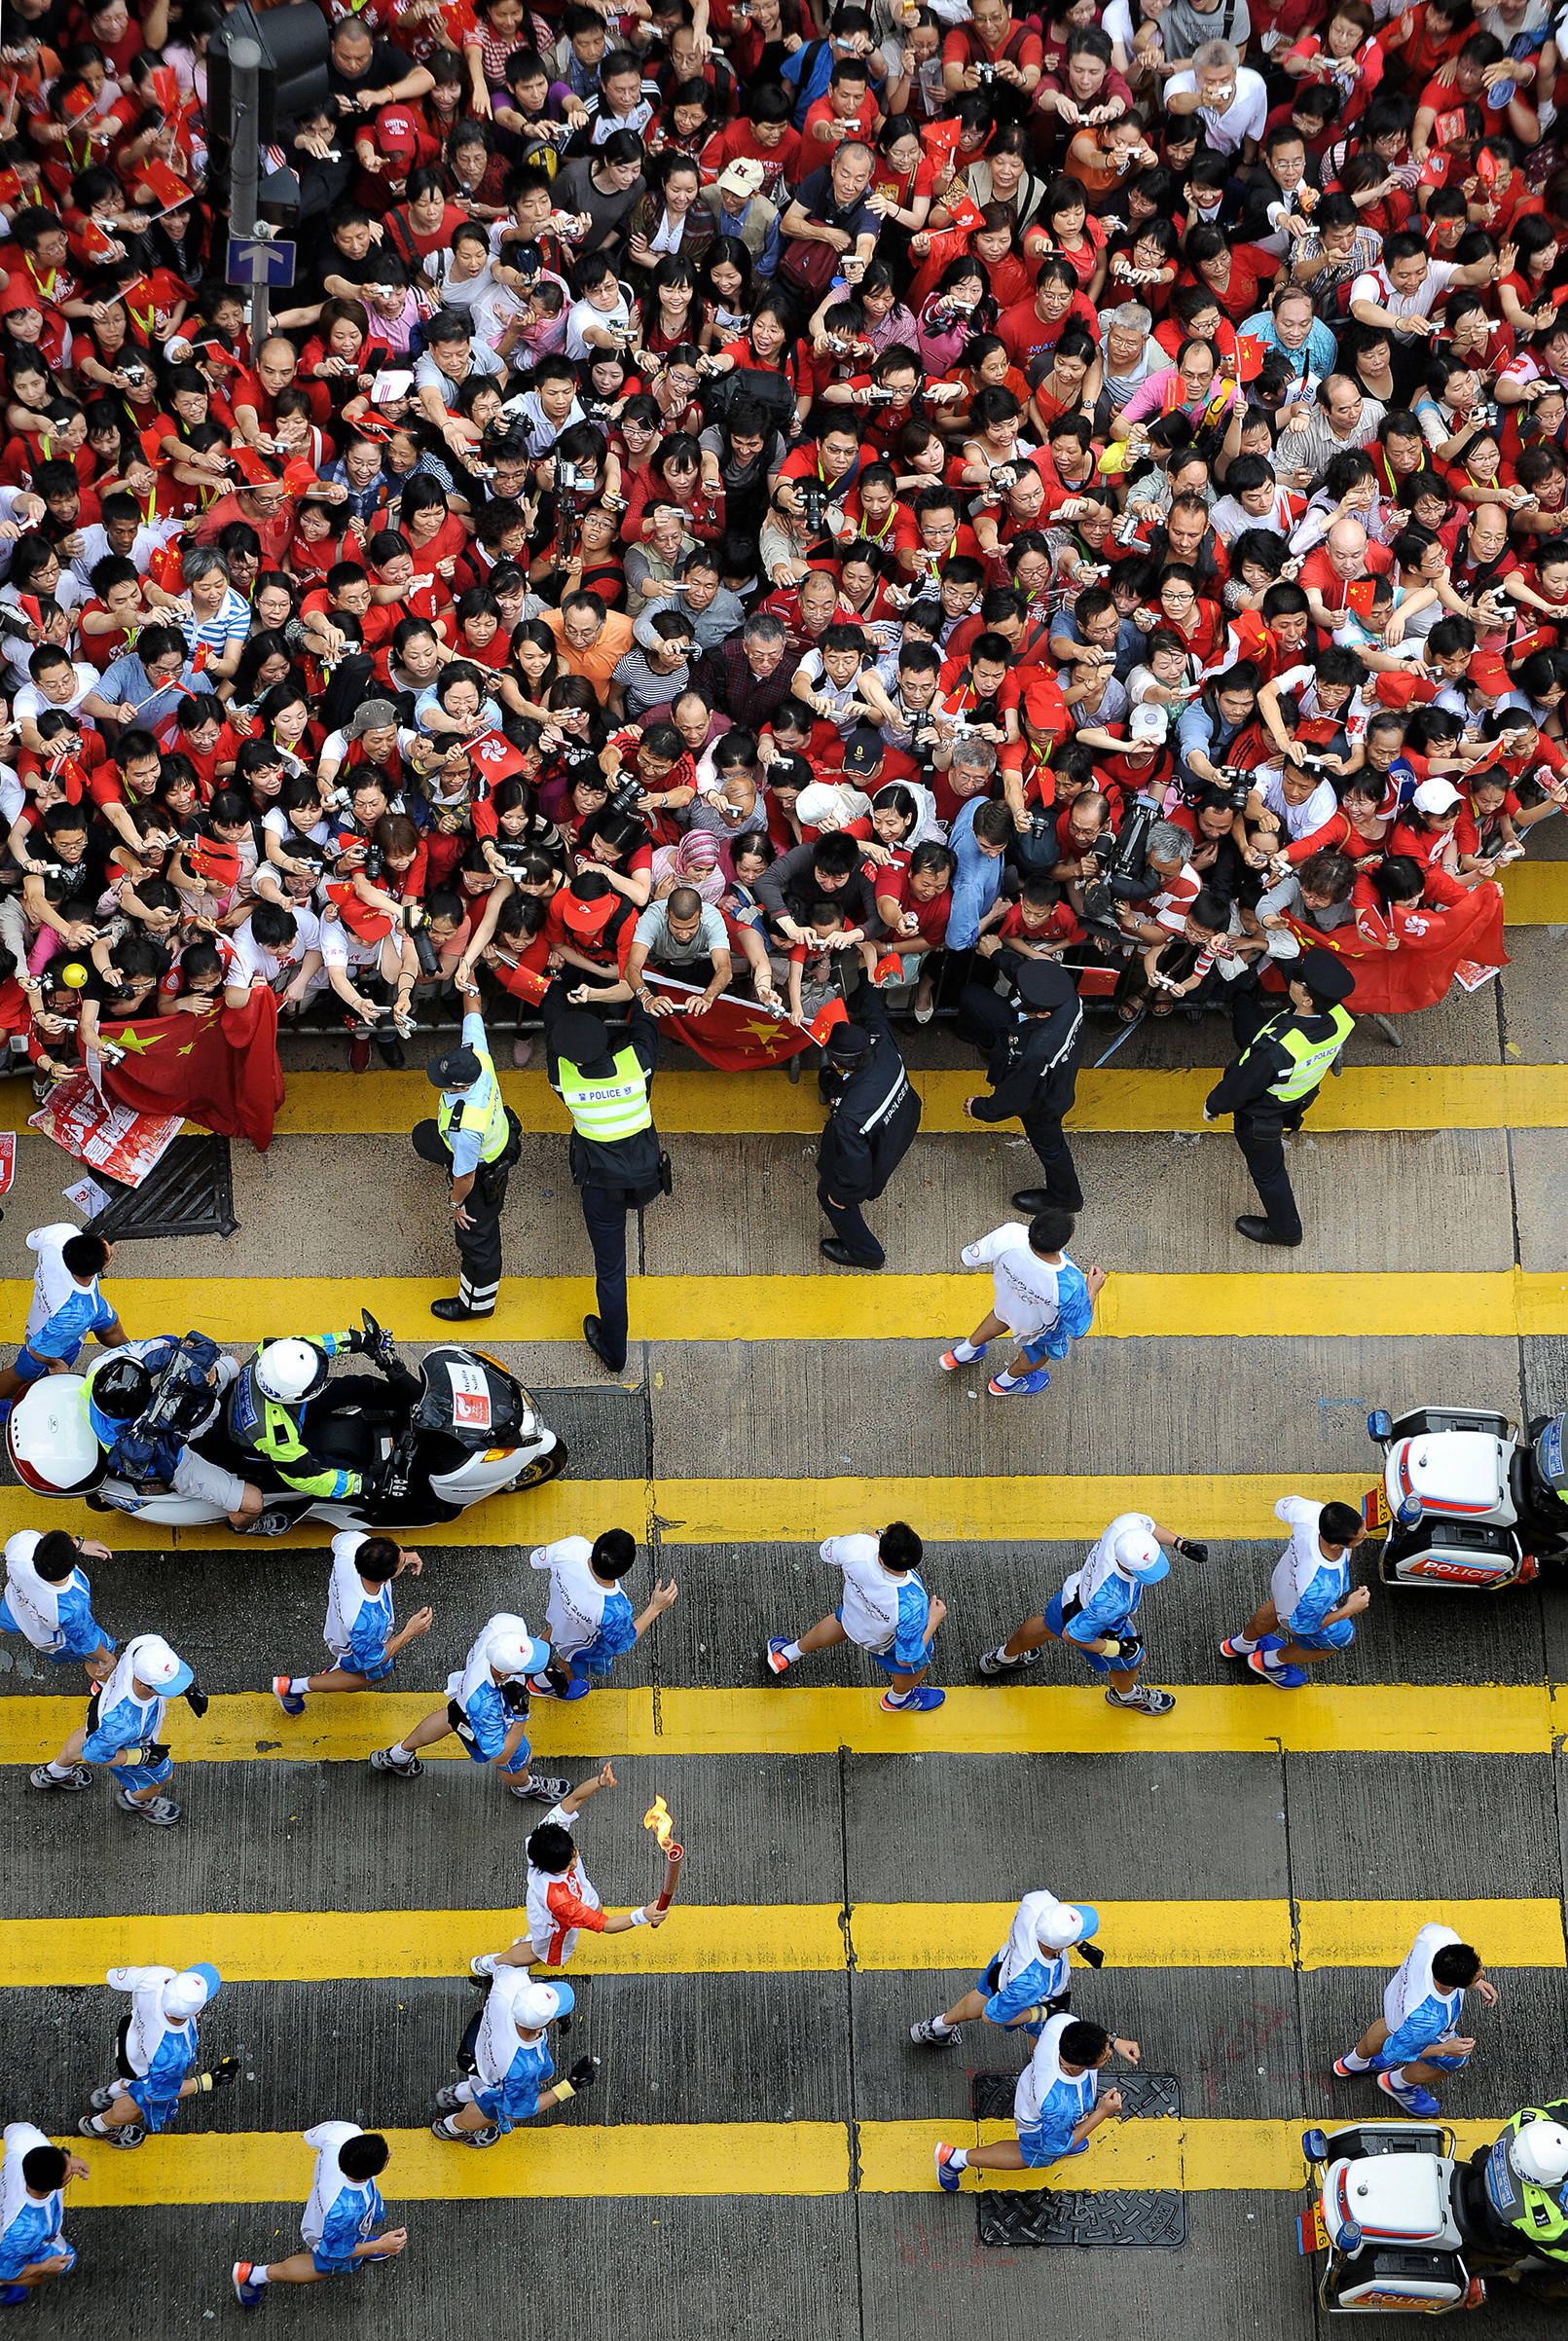 The Olympic torch, bottom, is paraded along Nathan Road in the Tsim Sha Tsui district of Hong Kong on May 2, 2008. Pro-Tibetan protesters, however, soured what should have been a patriotic moment for the authorities. Police detained around 20 people following minor scuffles along the route of the Olympic torch relay, as Hongkongers exercised their freedom to pile more pressure on China over Tibet and its human rights record.